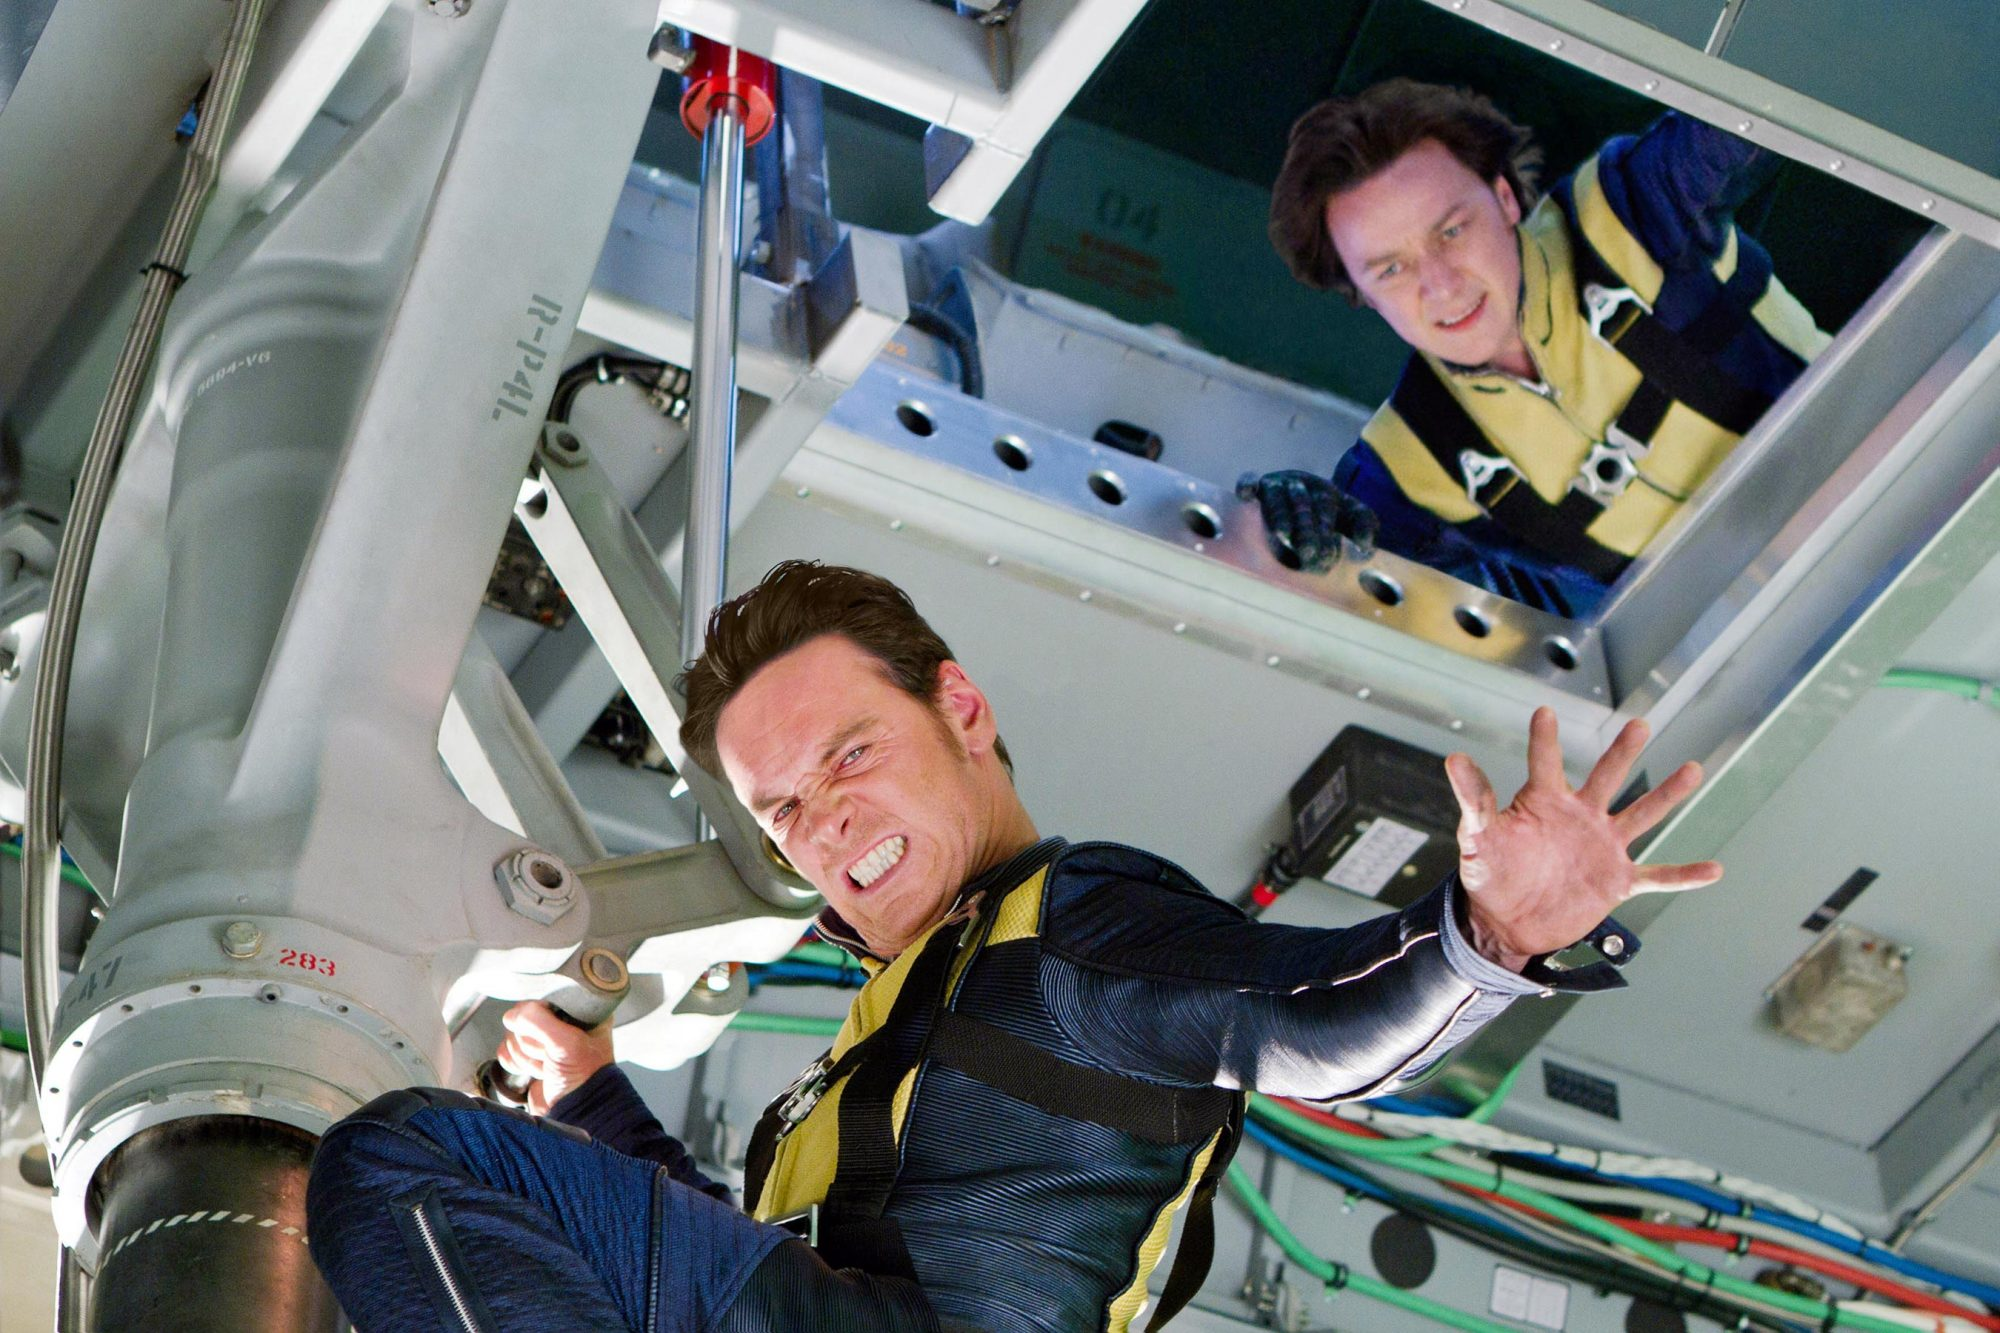 X-MEN: FIRST CLASS, from left: Michael Fassbender, James McAvoy, 2011. ph: Frank Masi/TM and Copyrig